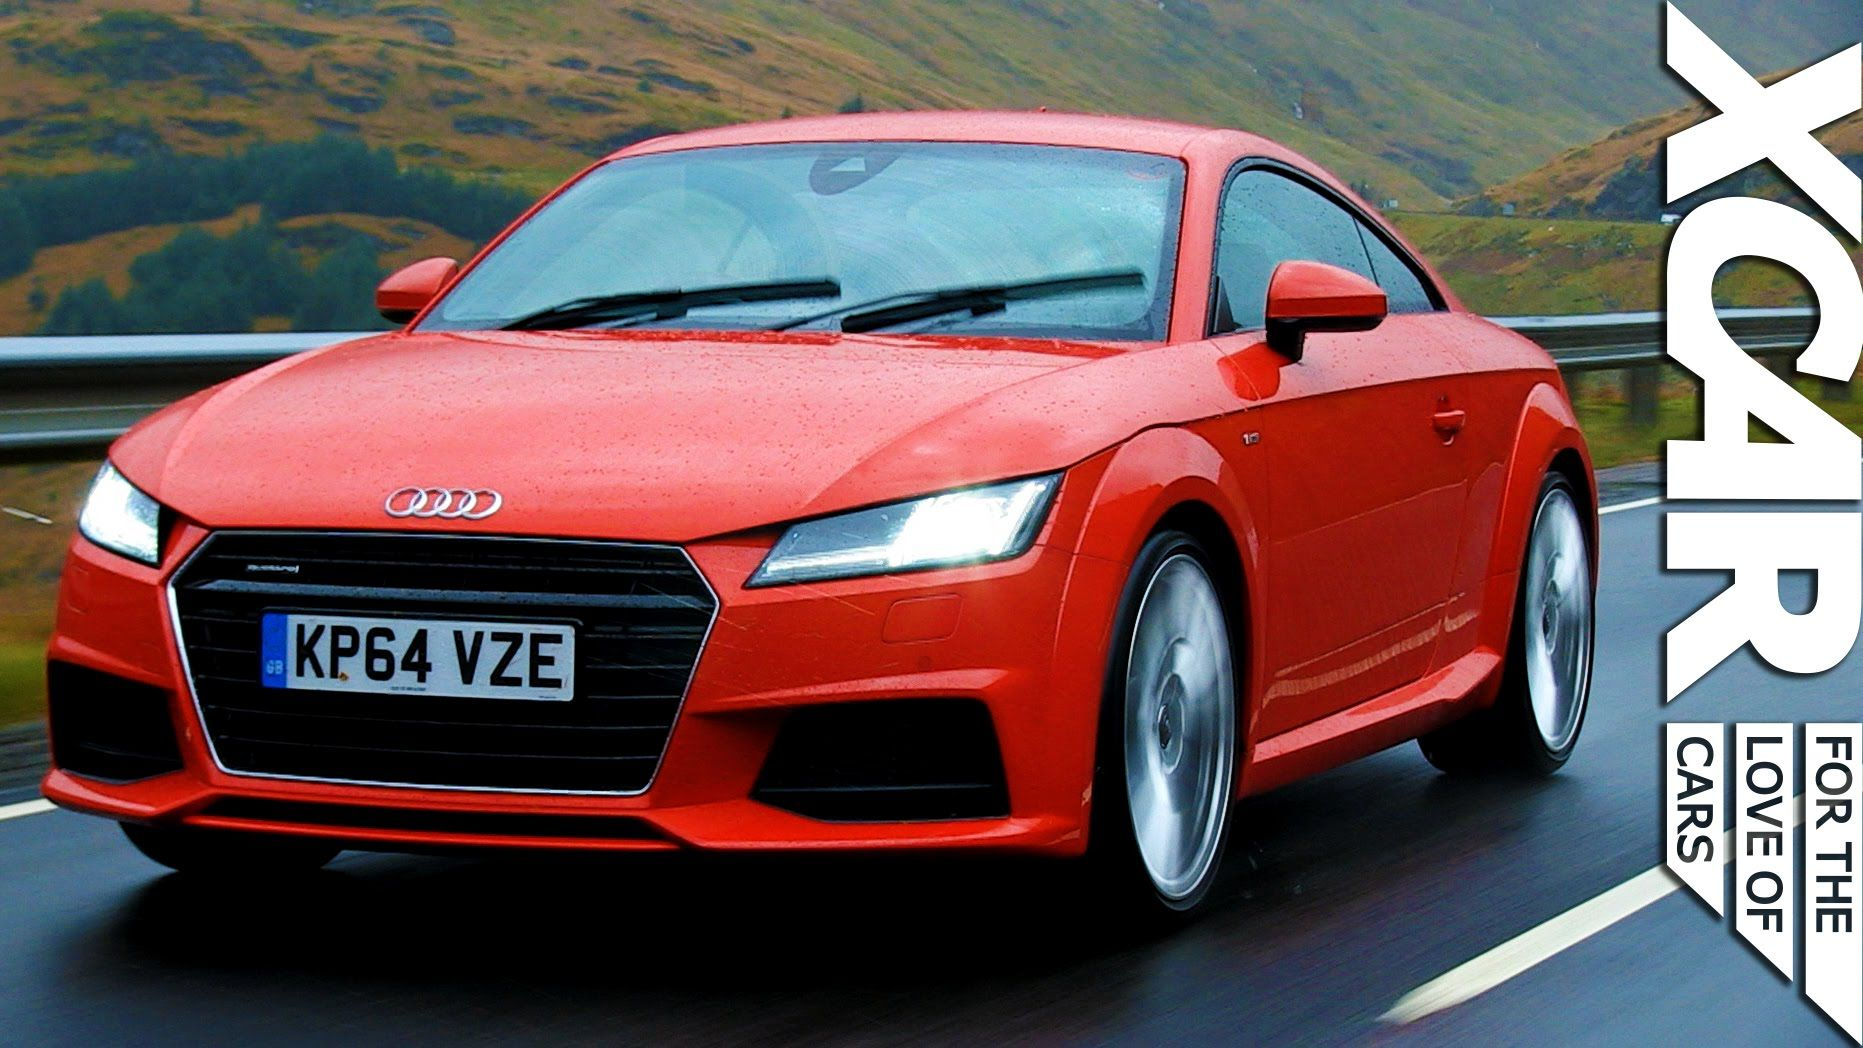 2015 Audi TT Slick Fast Sharp [XCAR] Over the